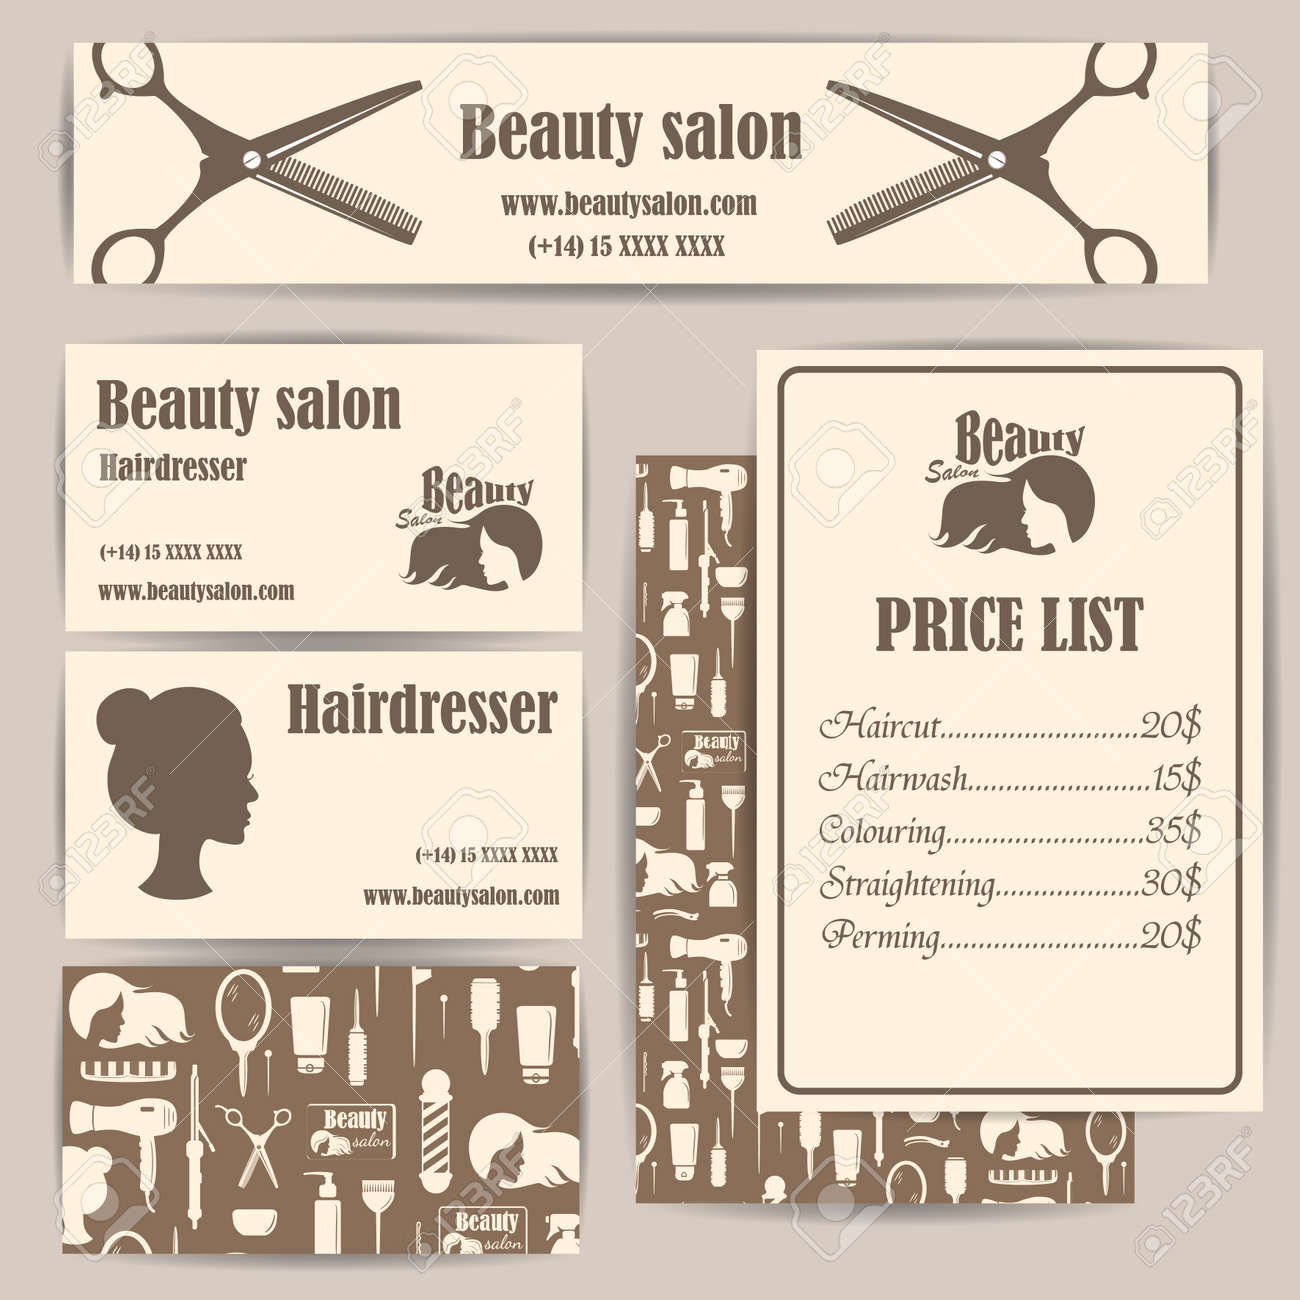 Beauty Salon Prices Beauty Salon Barbershop Vintage Business Cards And Prices Design